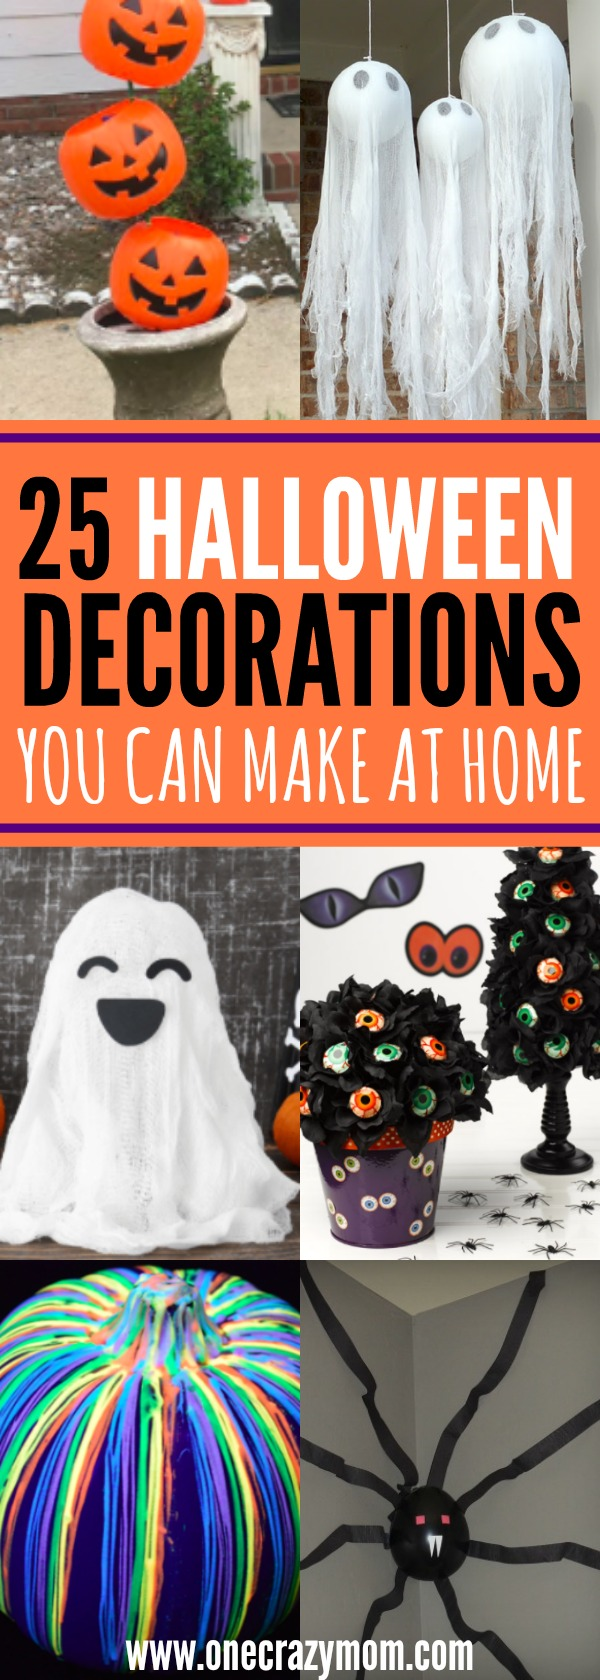 halloween decorations that you can make at home elegant